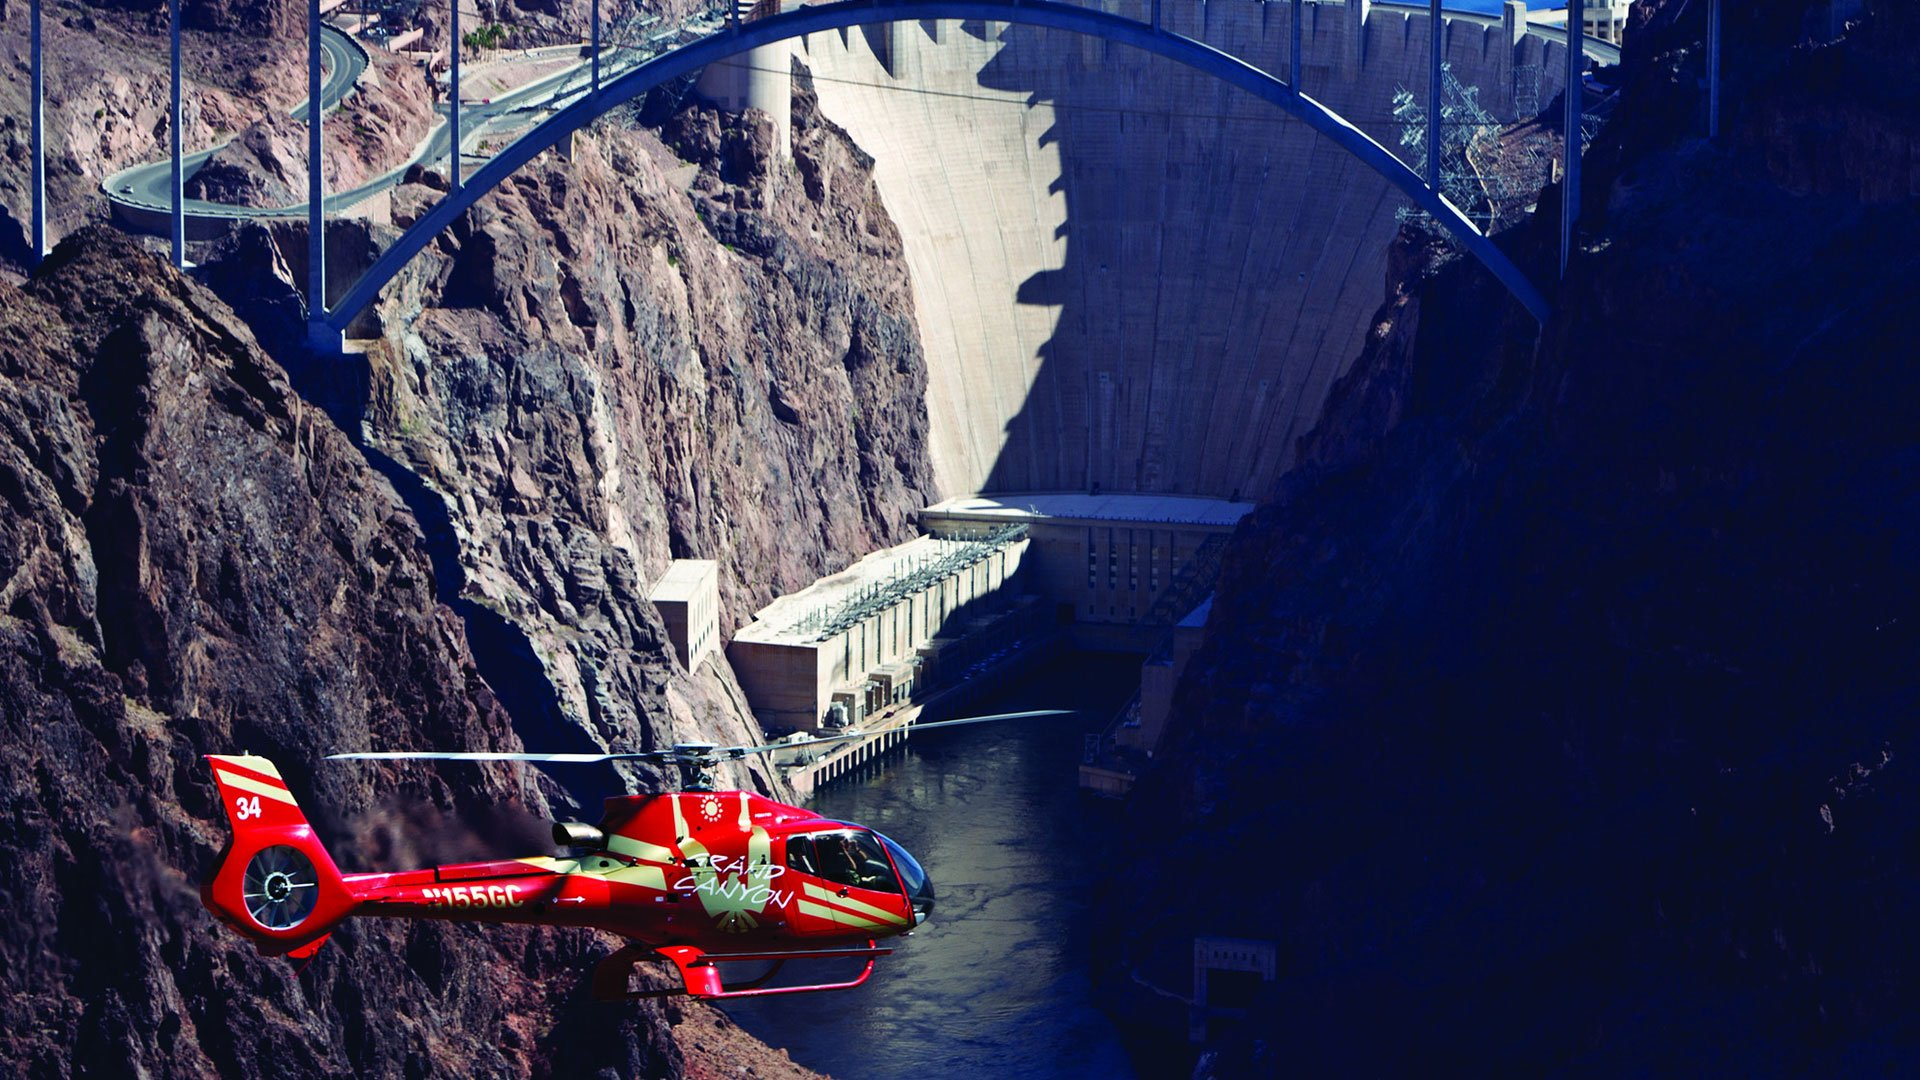 A red helicopter soars in front of Hoover Dam.